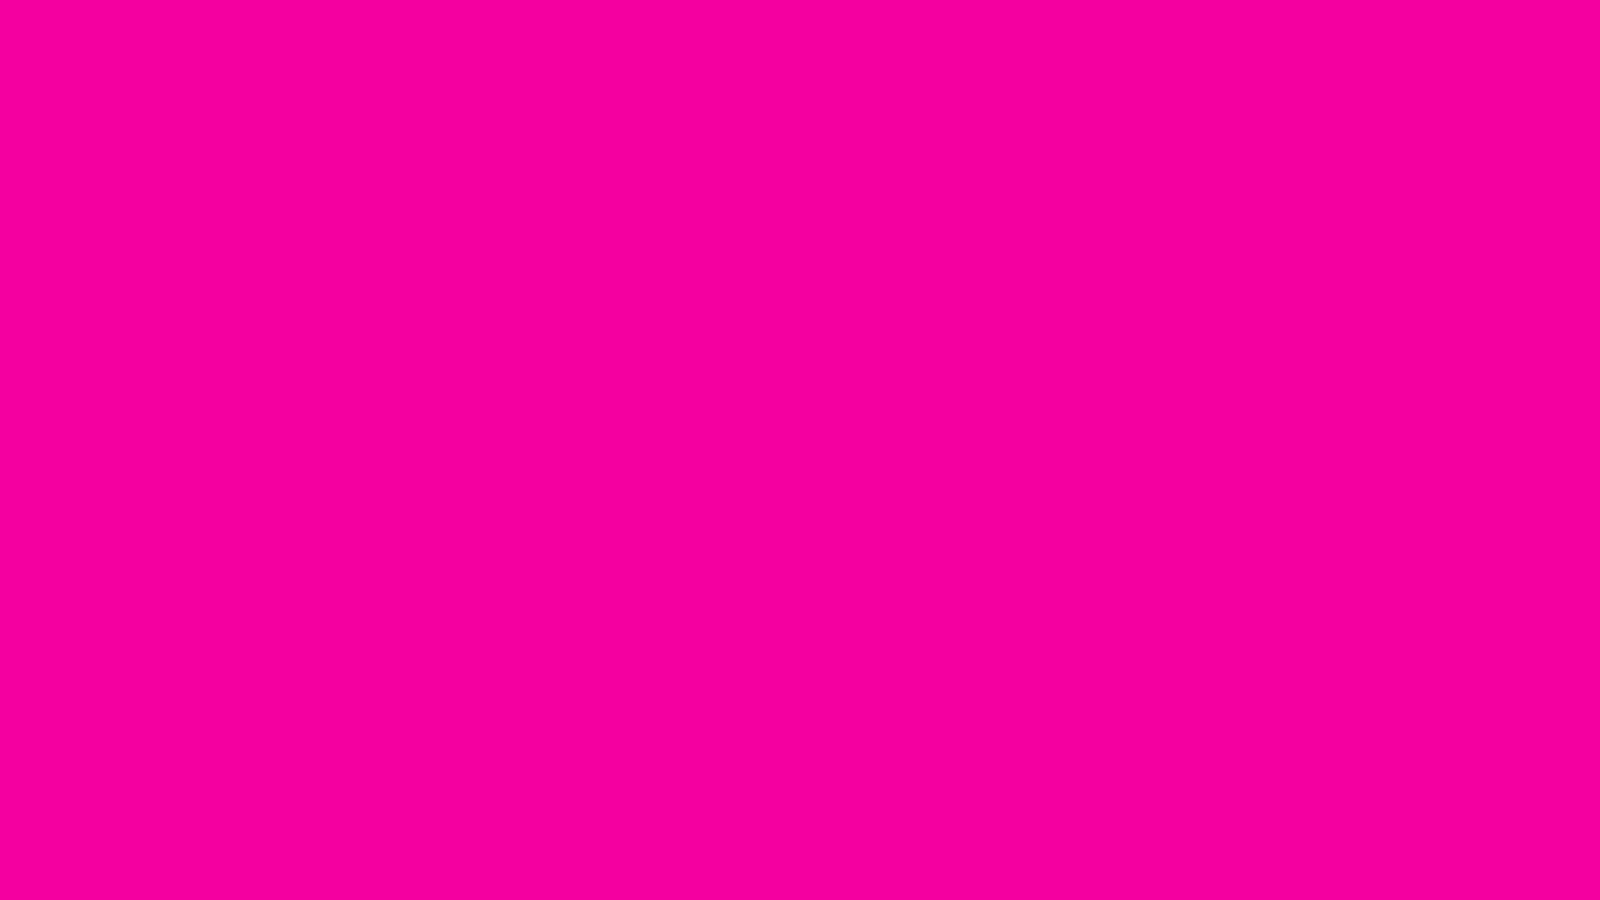 1600x900 Fashion Fuchsia Solid Color Background